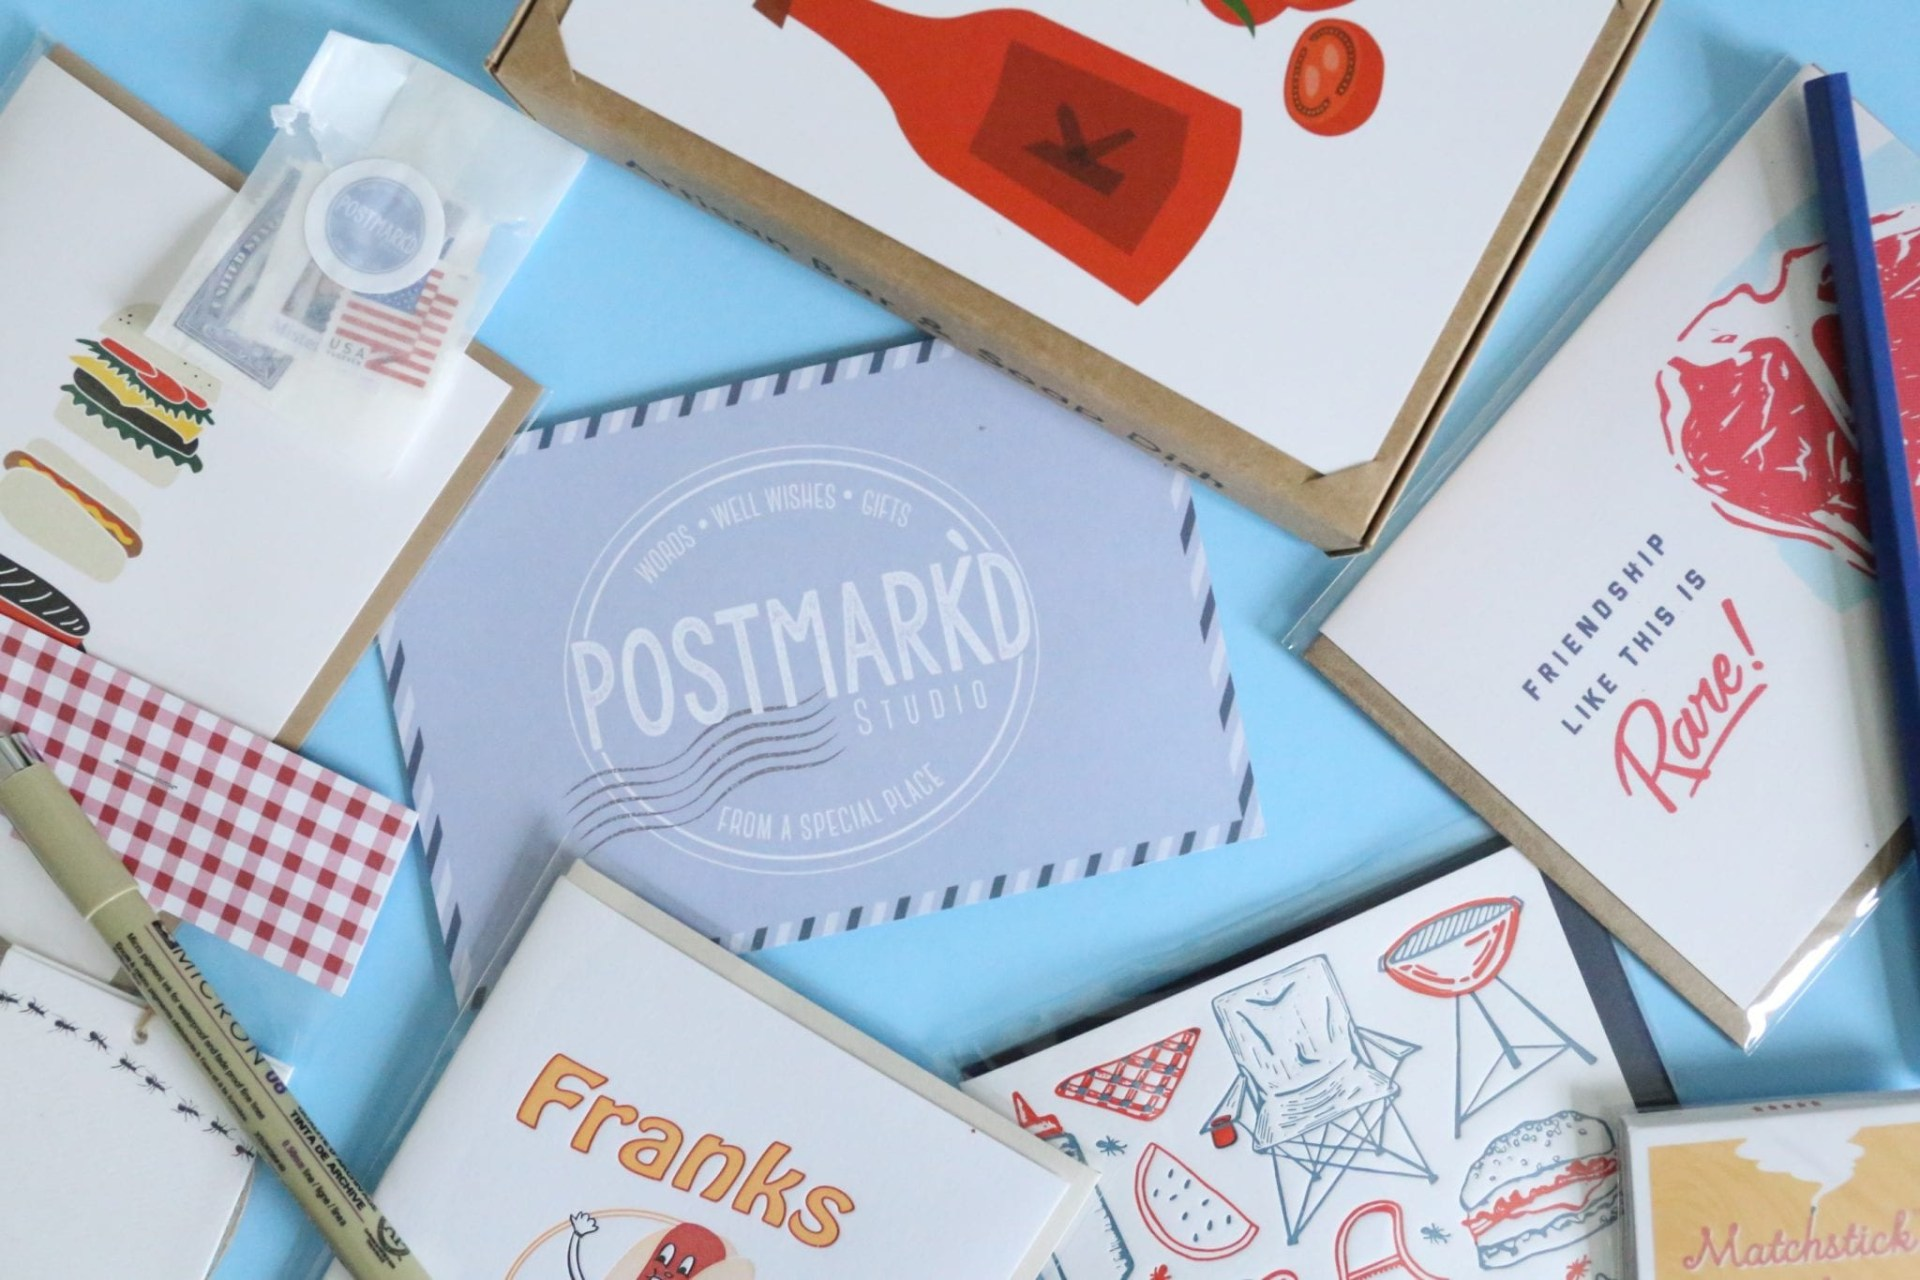 A Year Of Boxes Postmarkd Studio Review June 2018 A Year Of Boxes